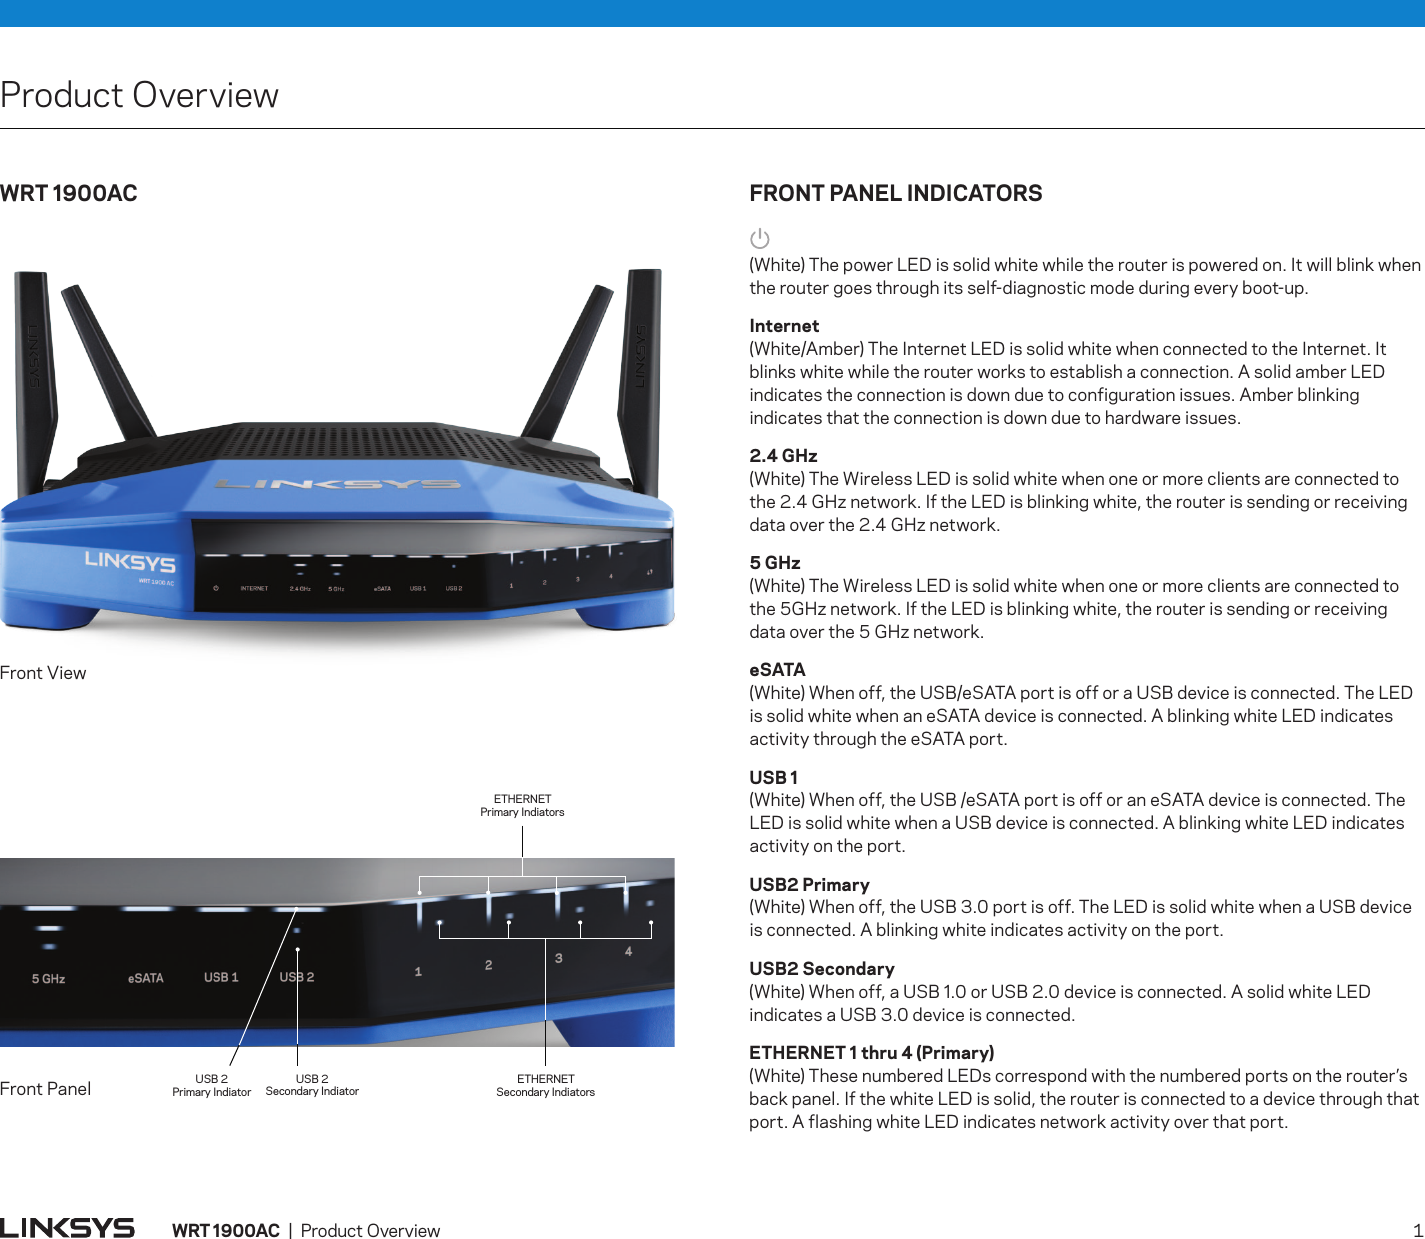 LINKSYS WRT1900AC Linksys Smart Wi-Fi Router User Manual Frequently